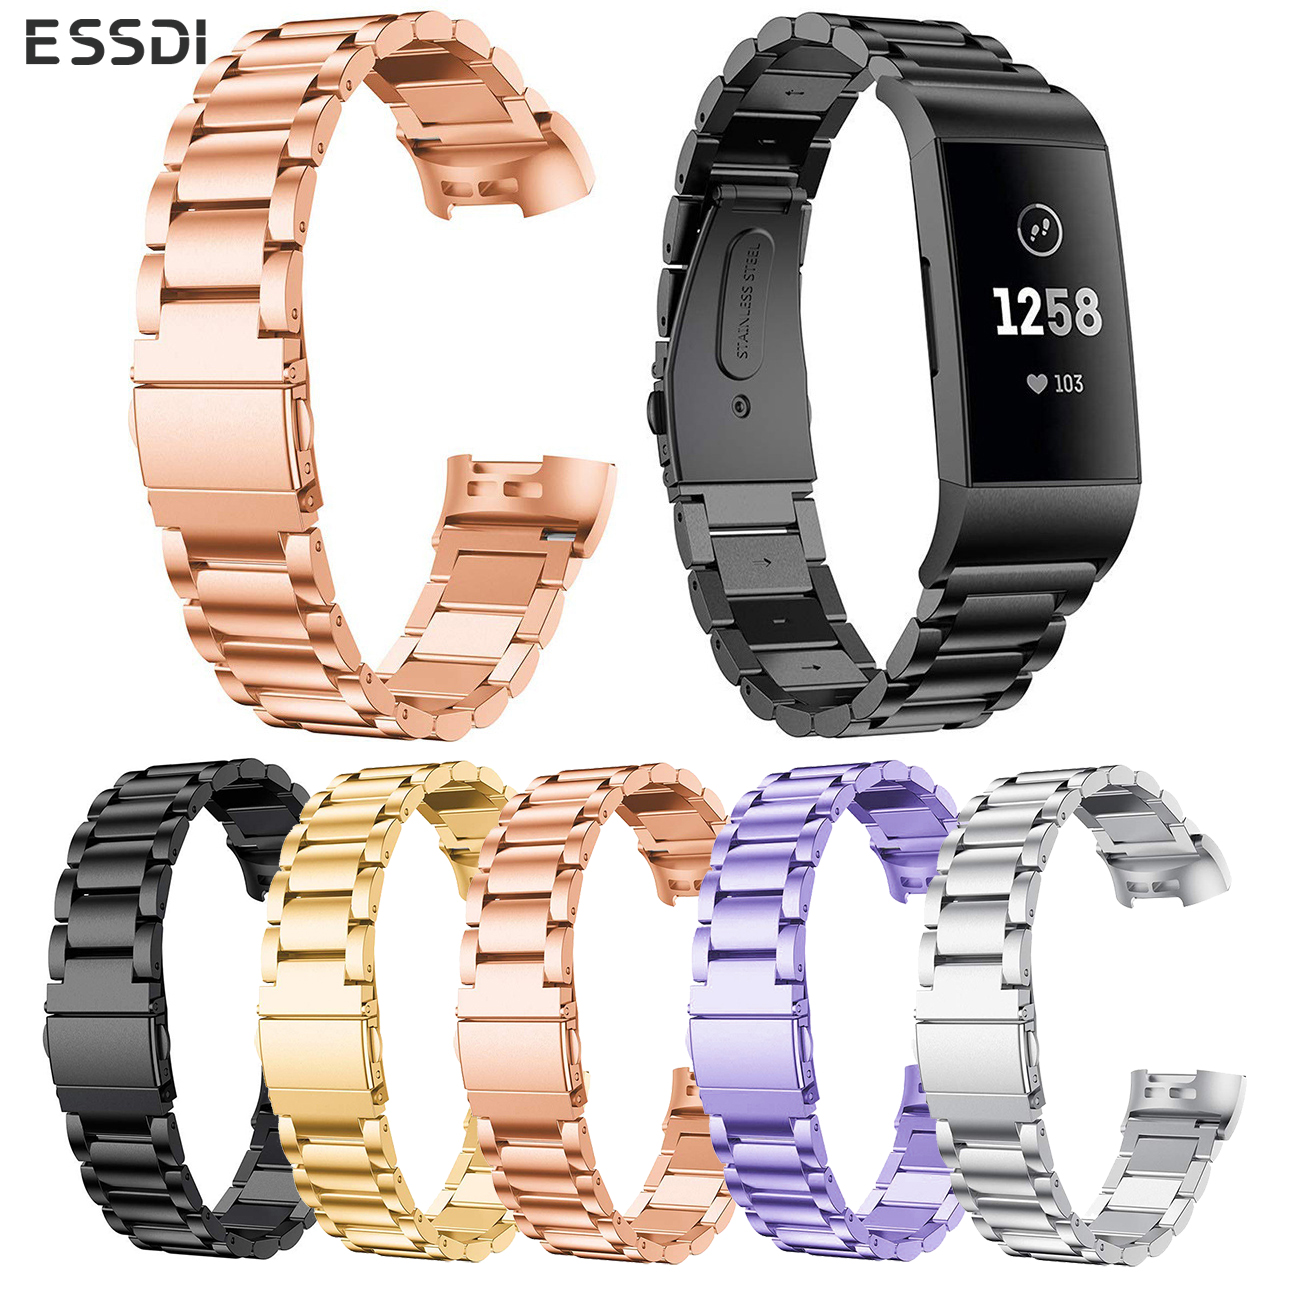 Essidi Stainless Steel Bracelet Strap For Fitbit Charge 3 Smart Wristband Loop Replacement For Charge 3 Fitness Band Metal Strap